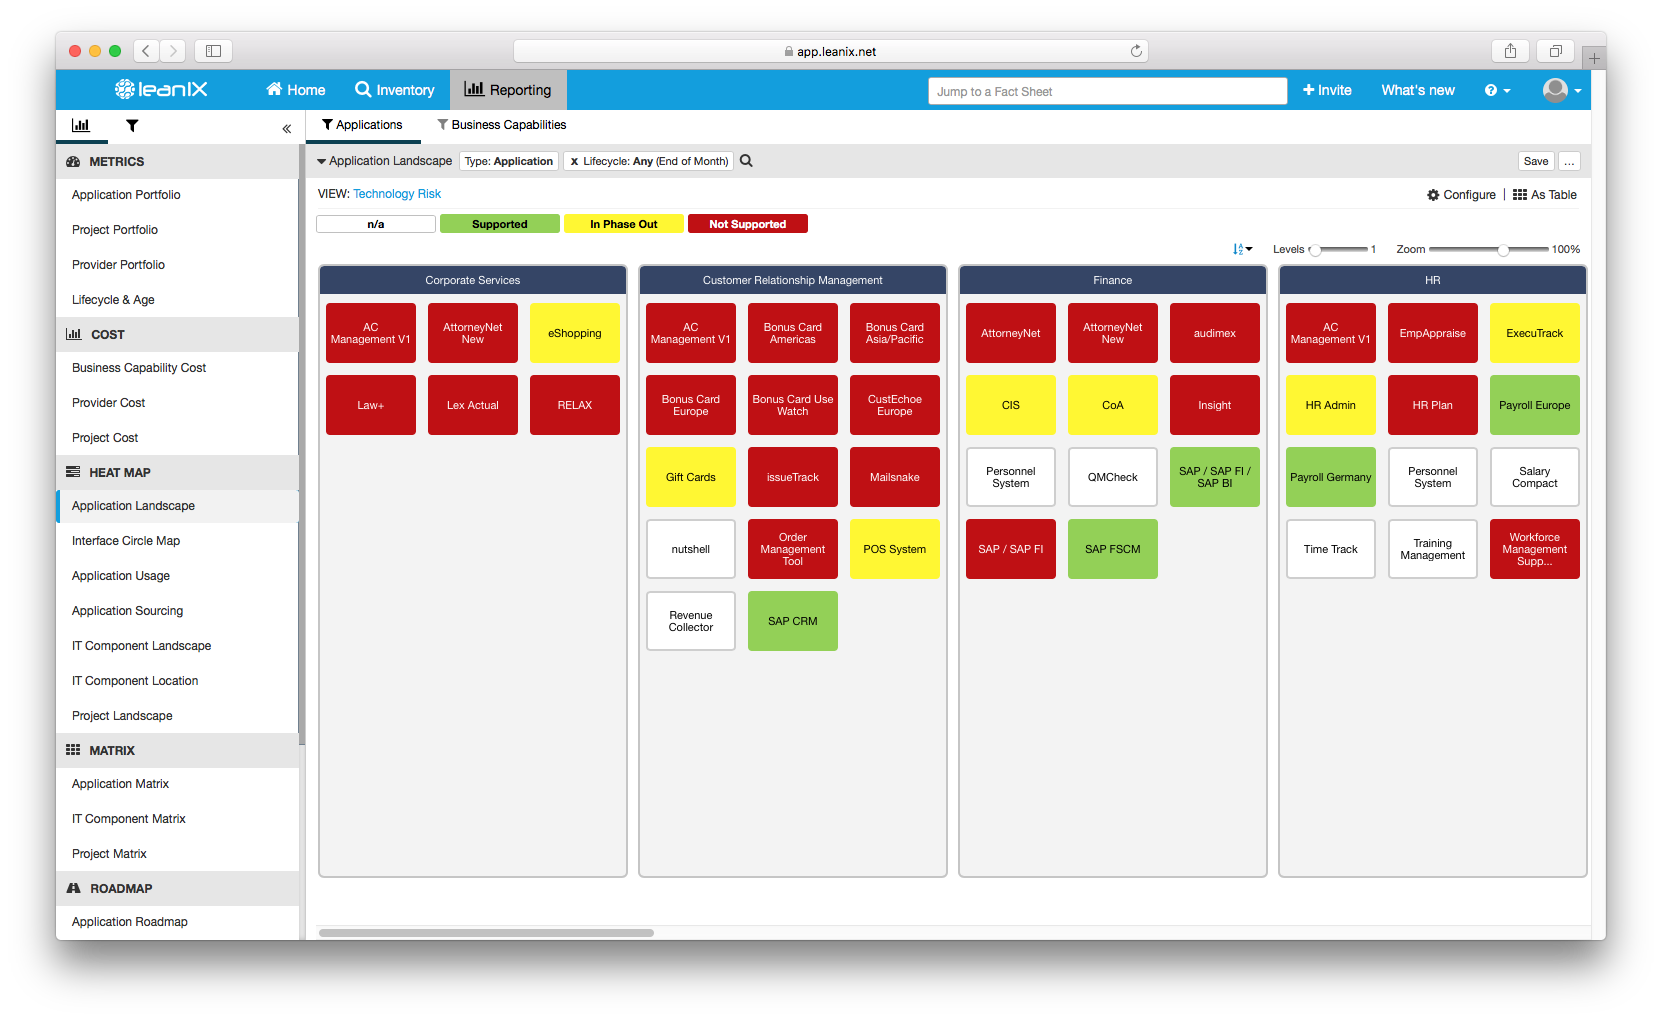 Application Landscape heat map showing the IT components that the application is built on are not supported anymore V3